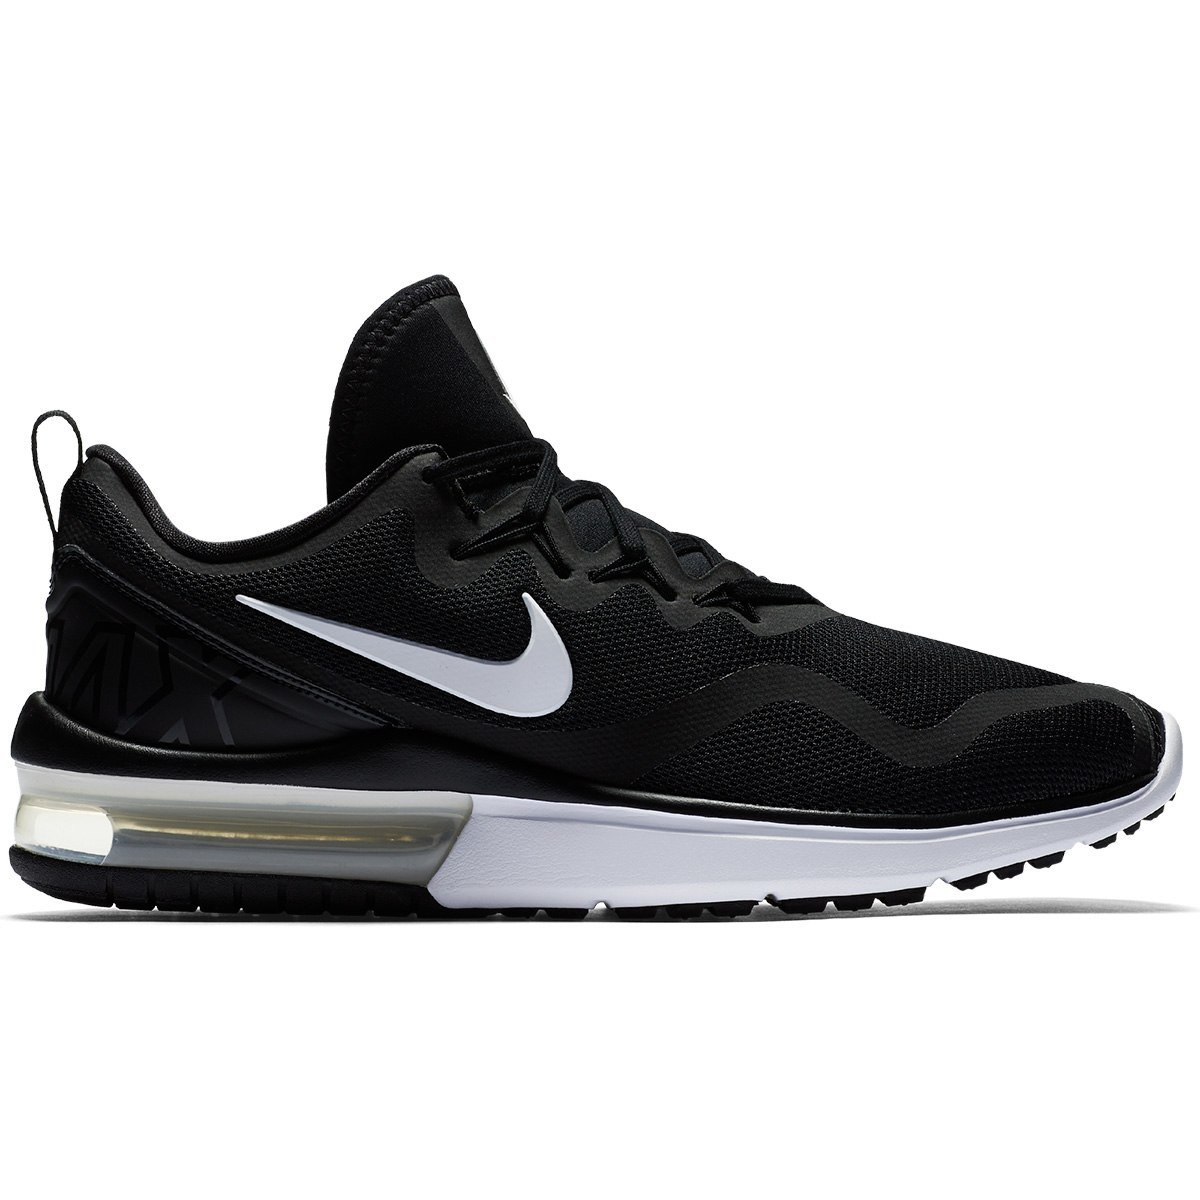 t nis nike air max fury masculino preto e branco compre agora netshoes. Black Bedroom Furniture Sets. Home Design Ideas